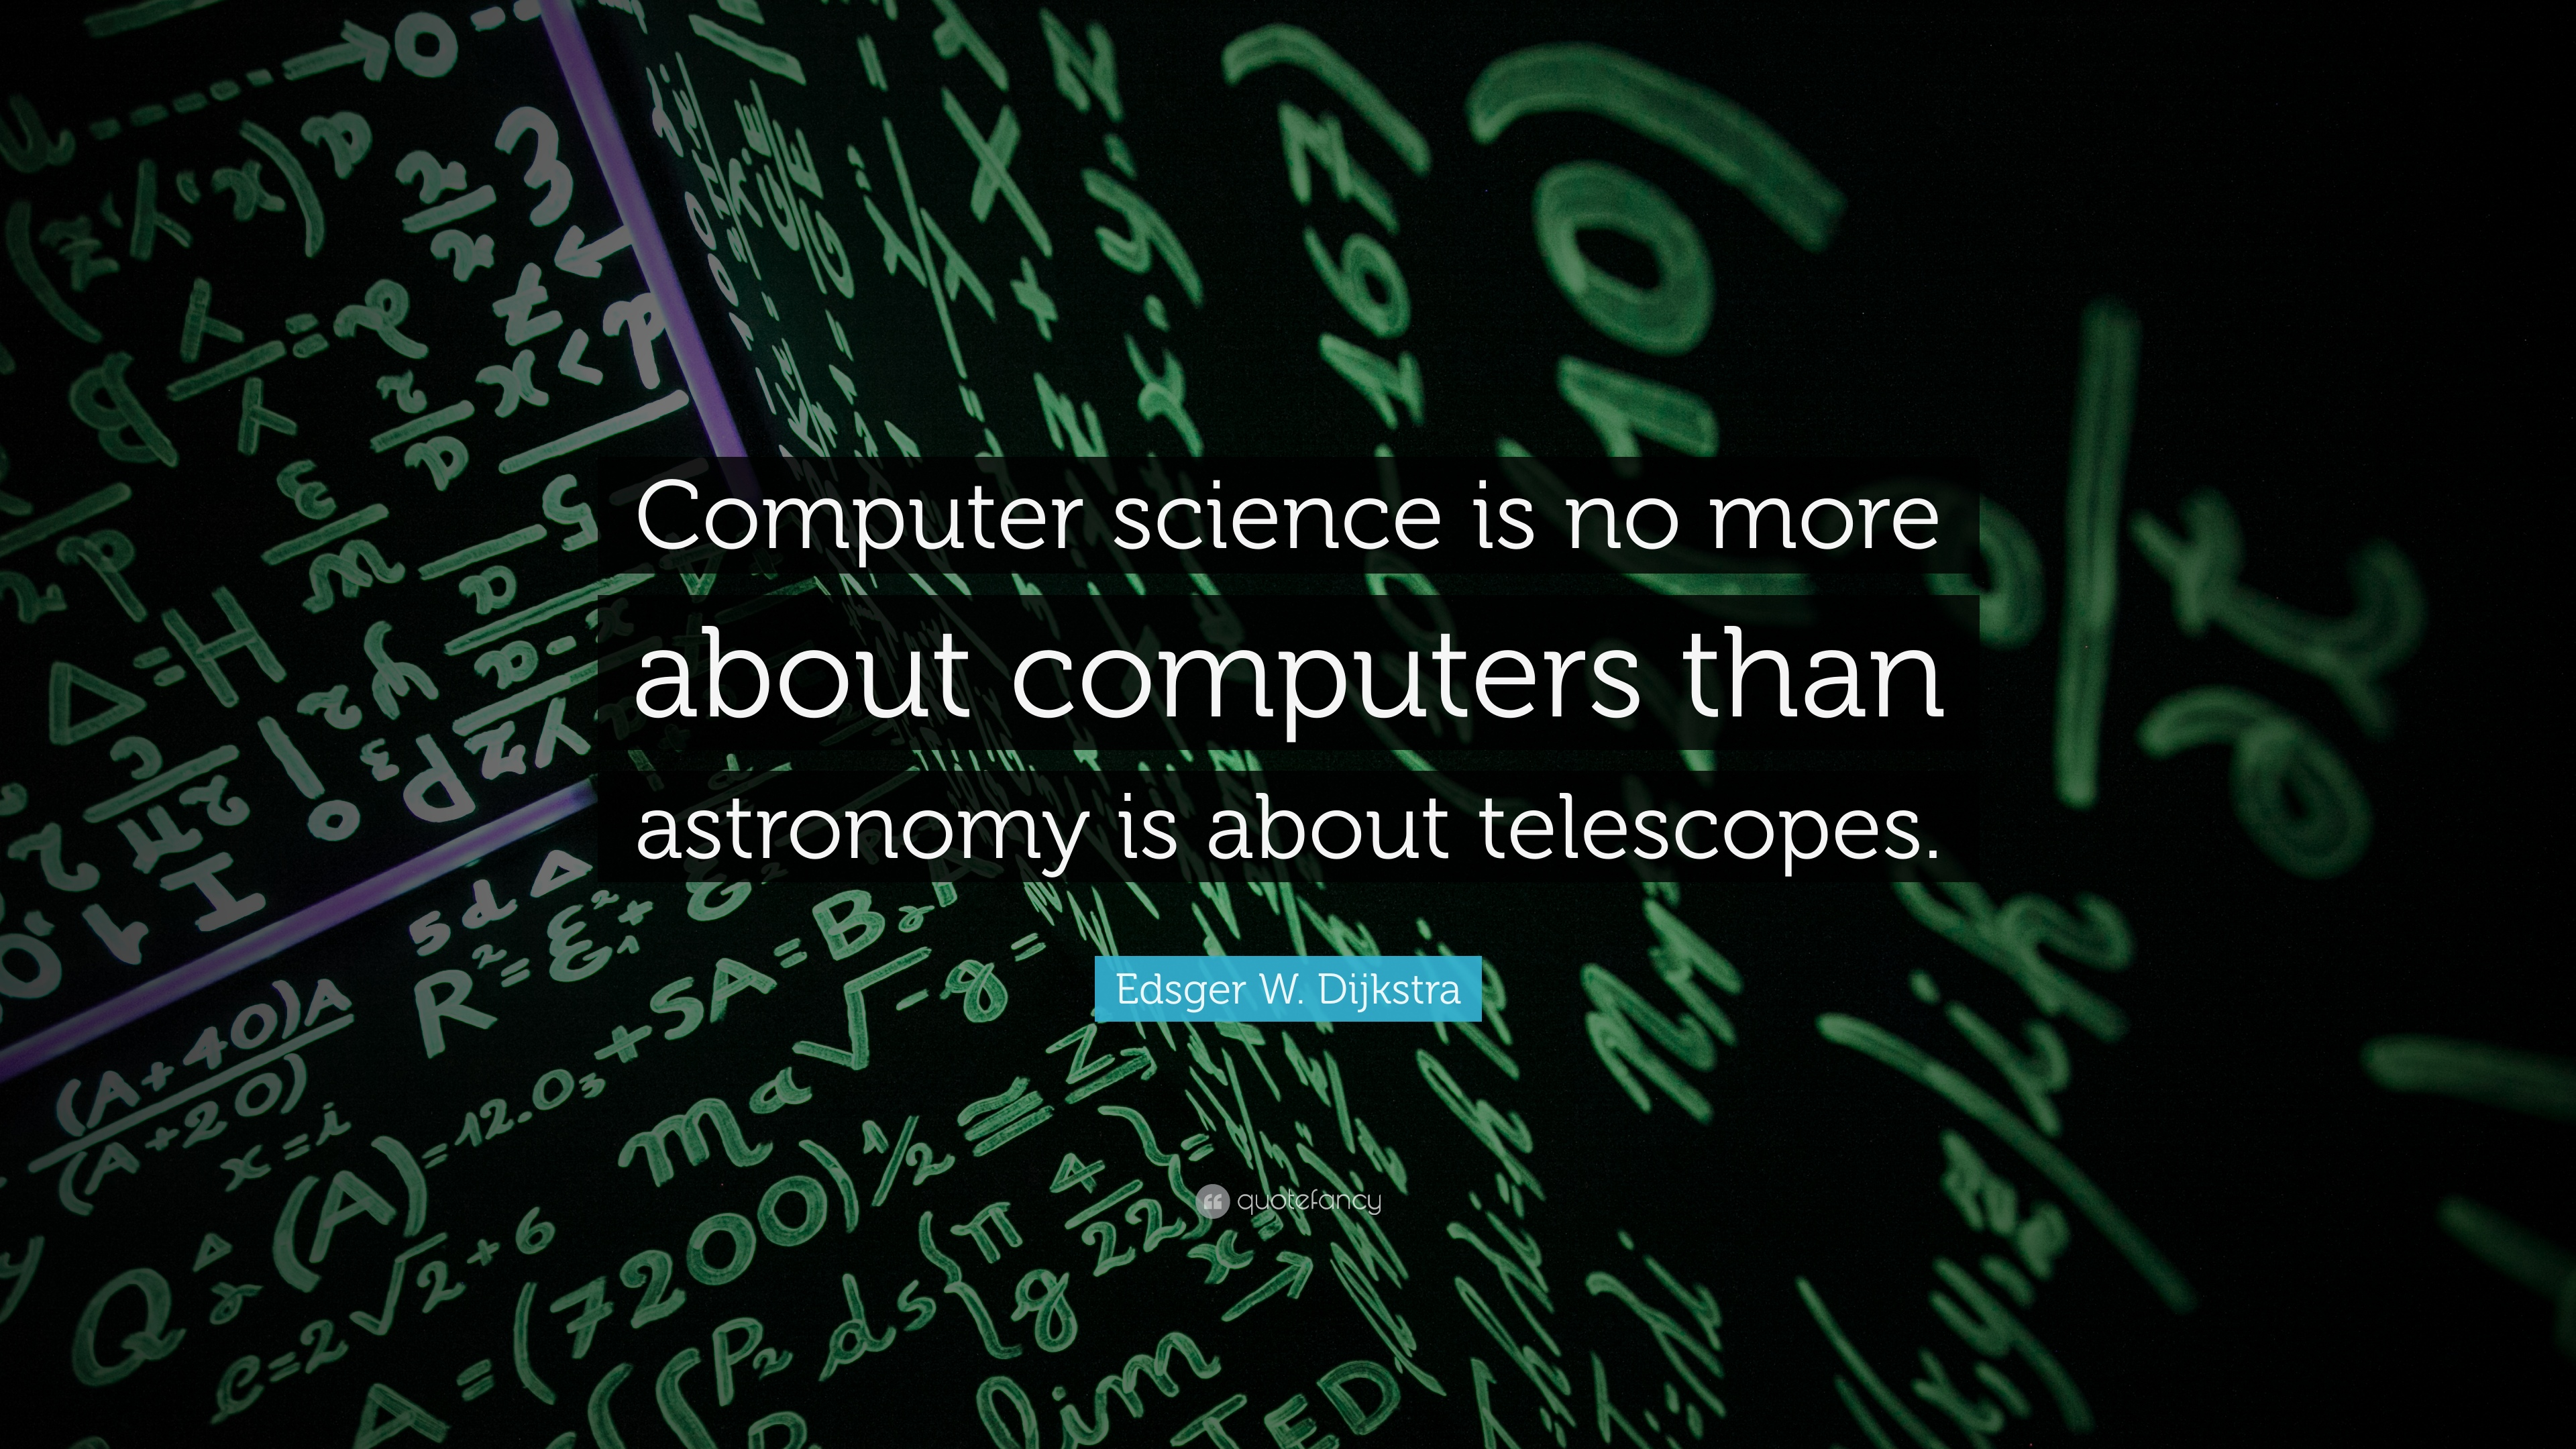 Edsger W Dijkstra Quote Computer Science Is No More About Computers Than Astronomy